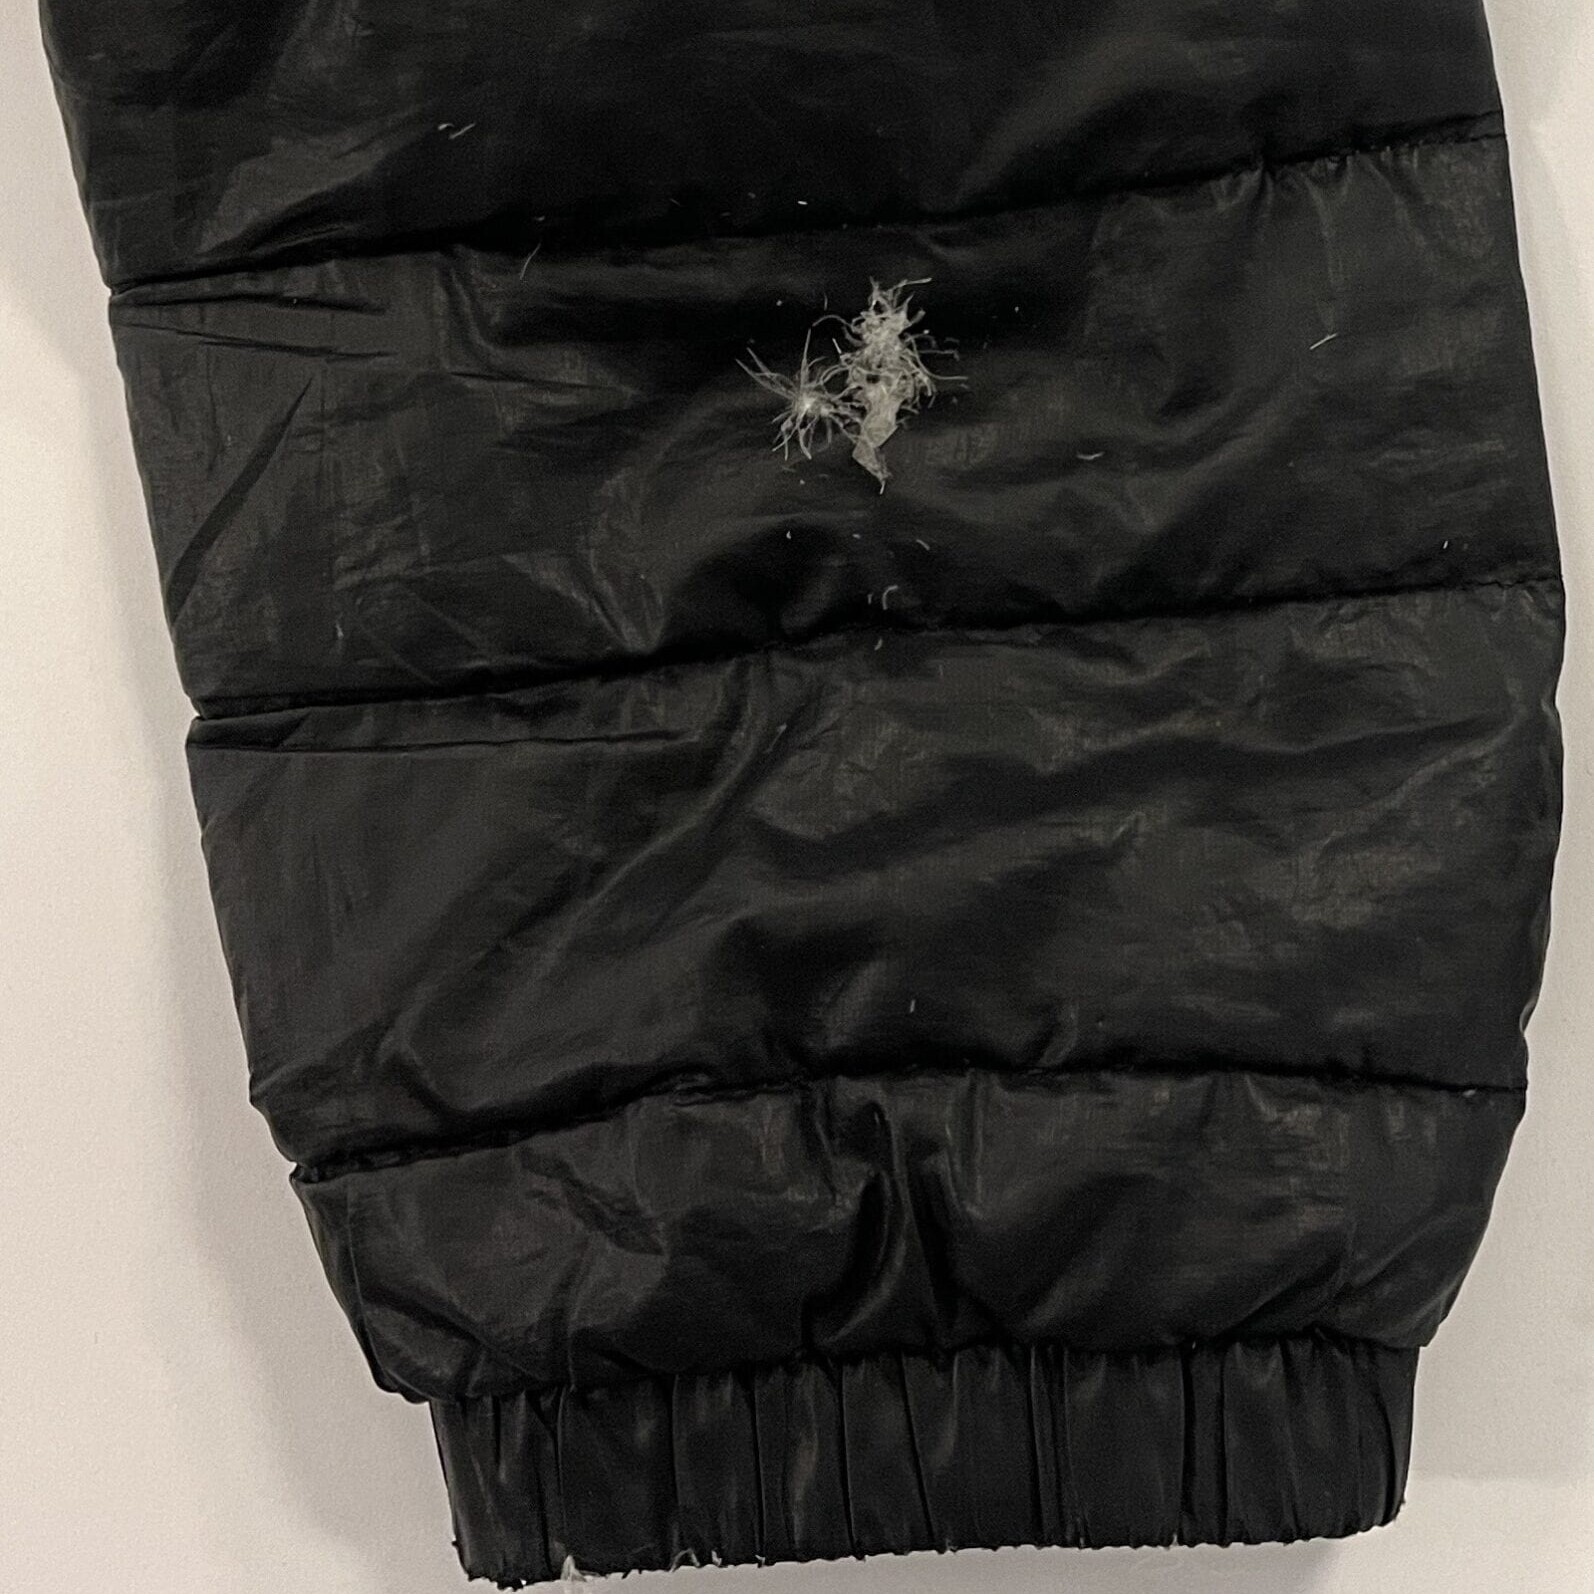 A black puffy jacket sleeve with a hole in it